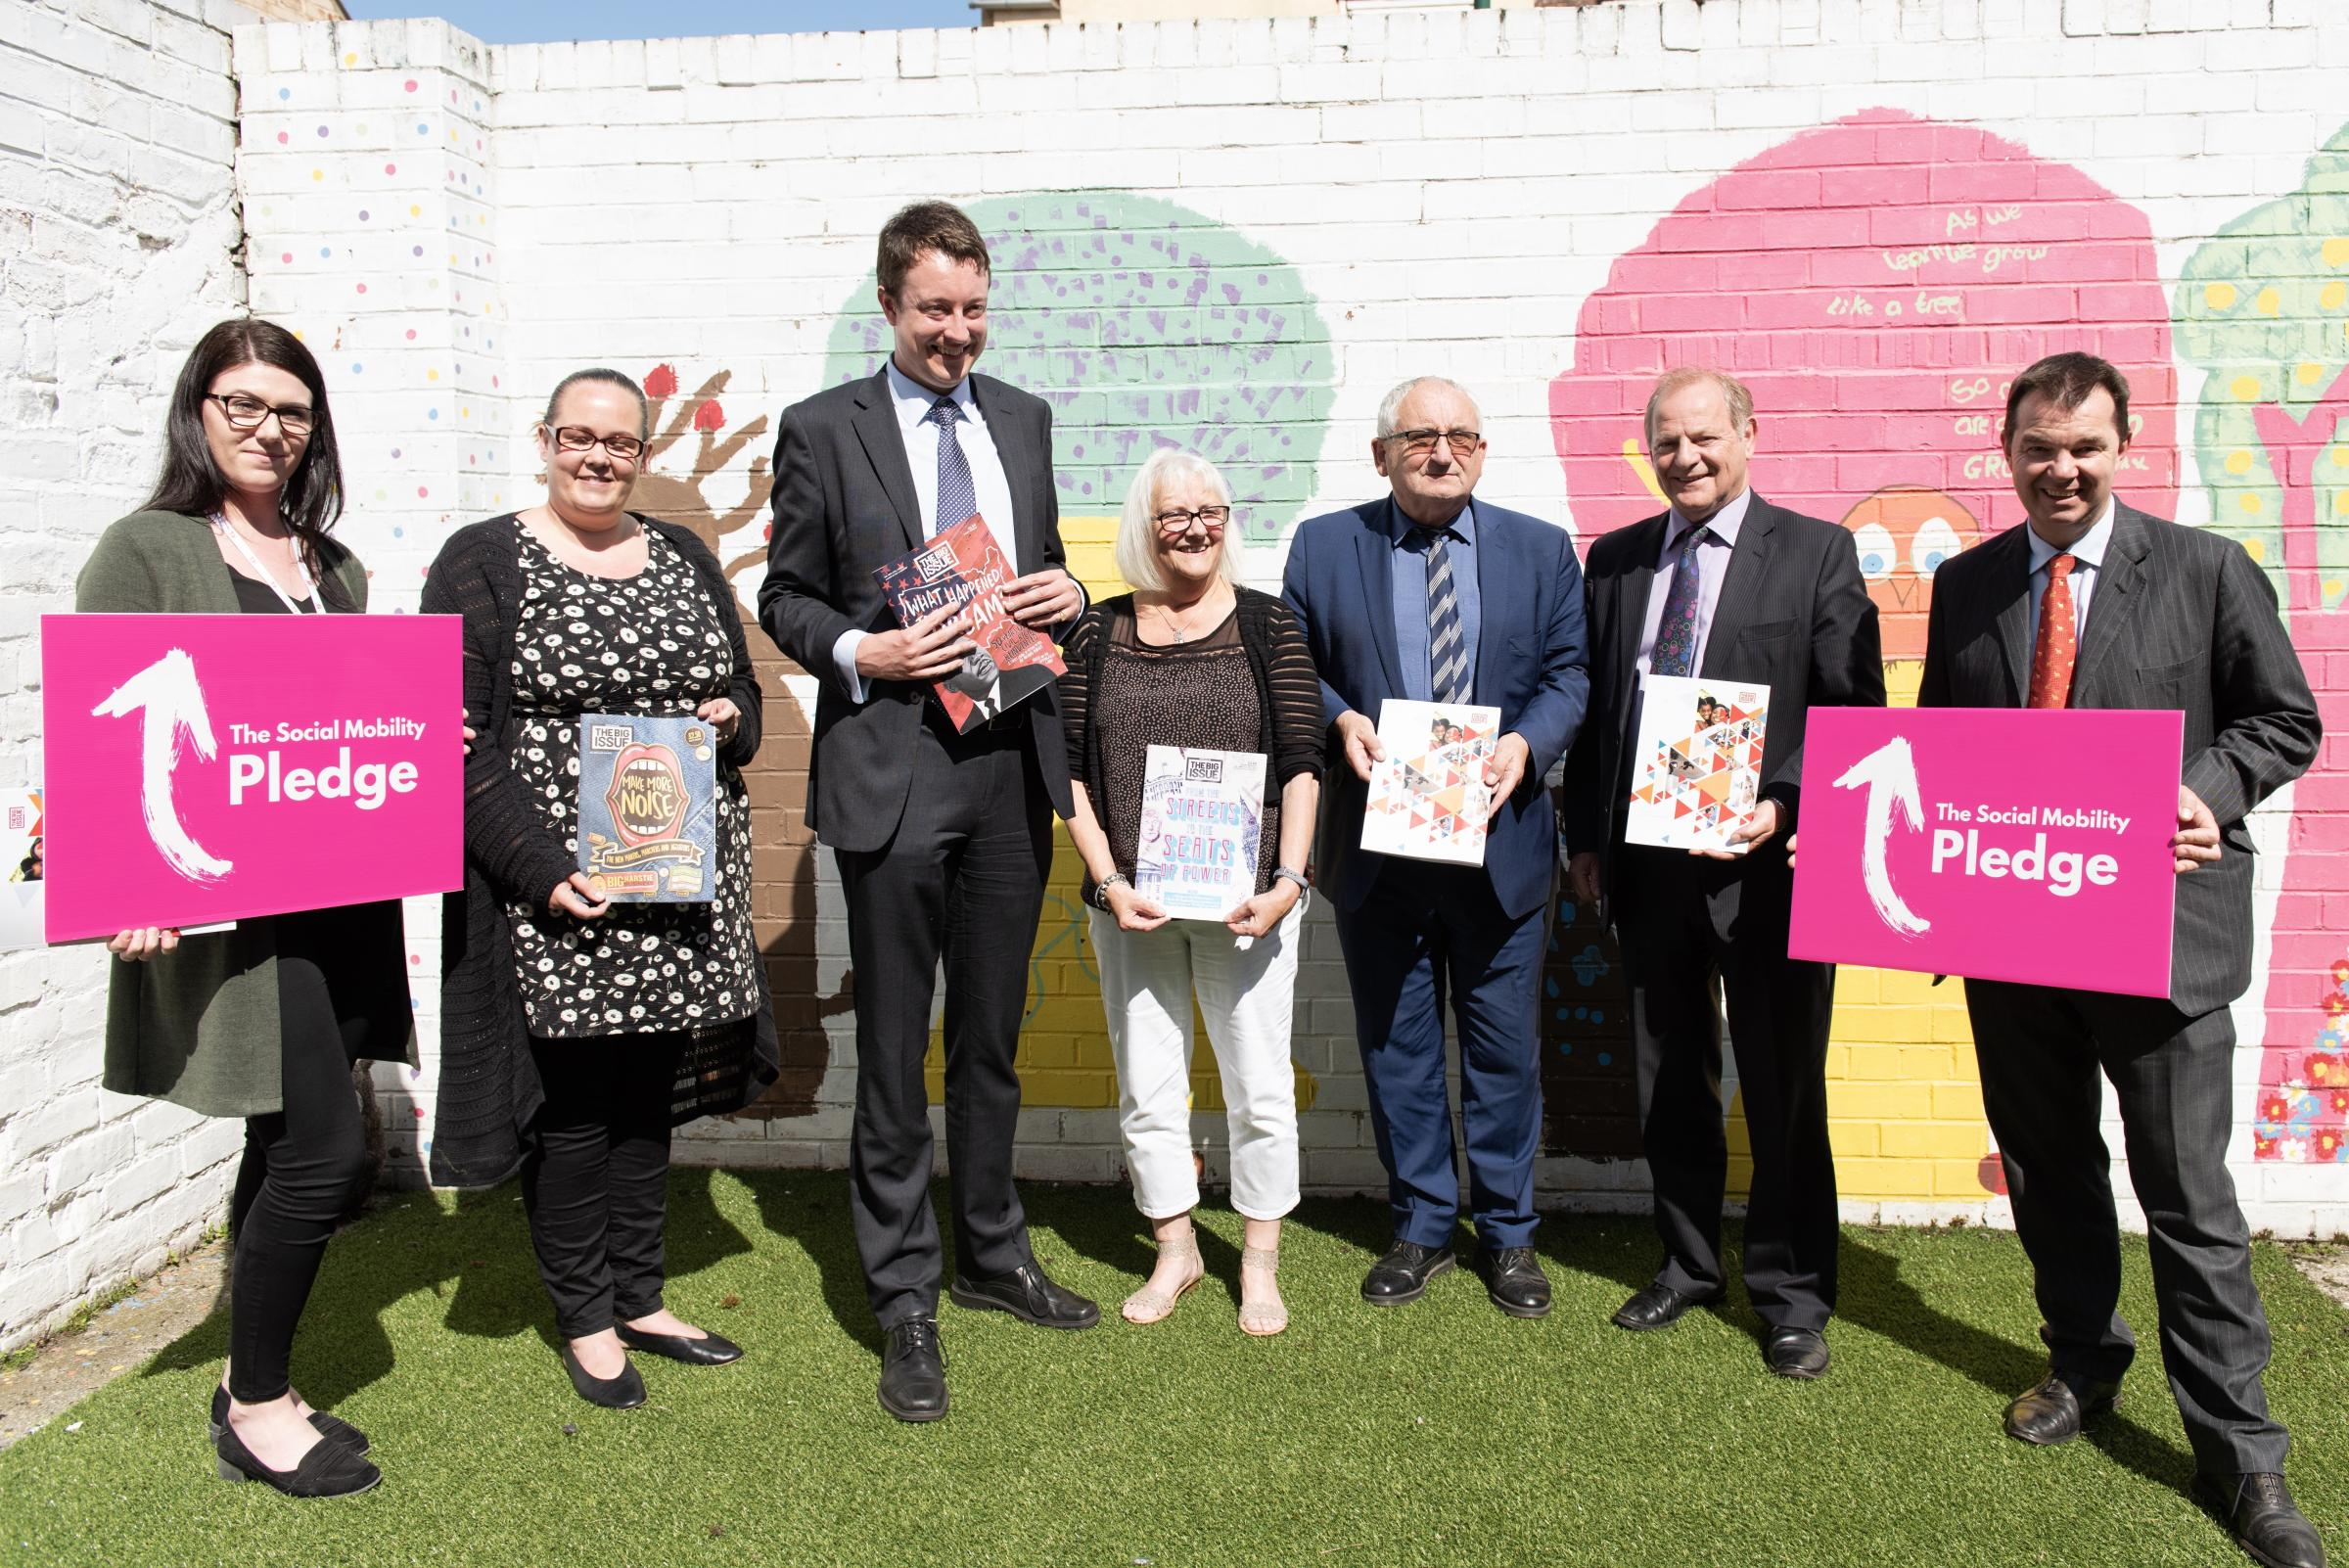 SUPPORT: MP Simon Clarke pictured with Lord John Bird, MP Guy Opperman and the team at The Link